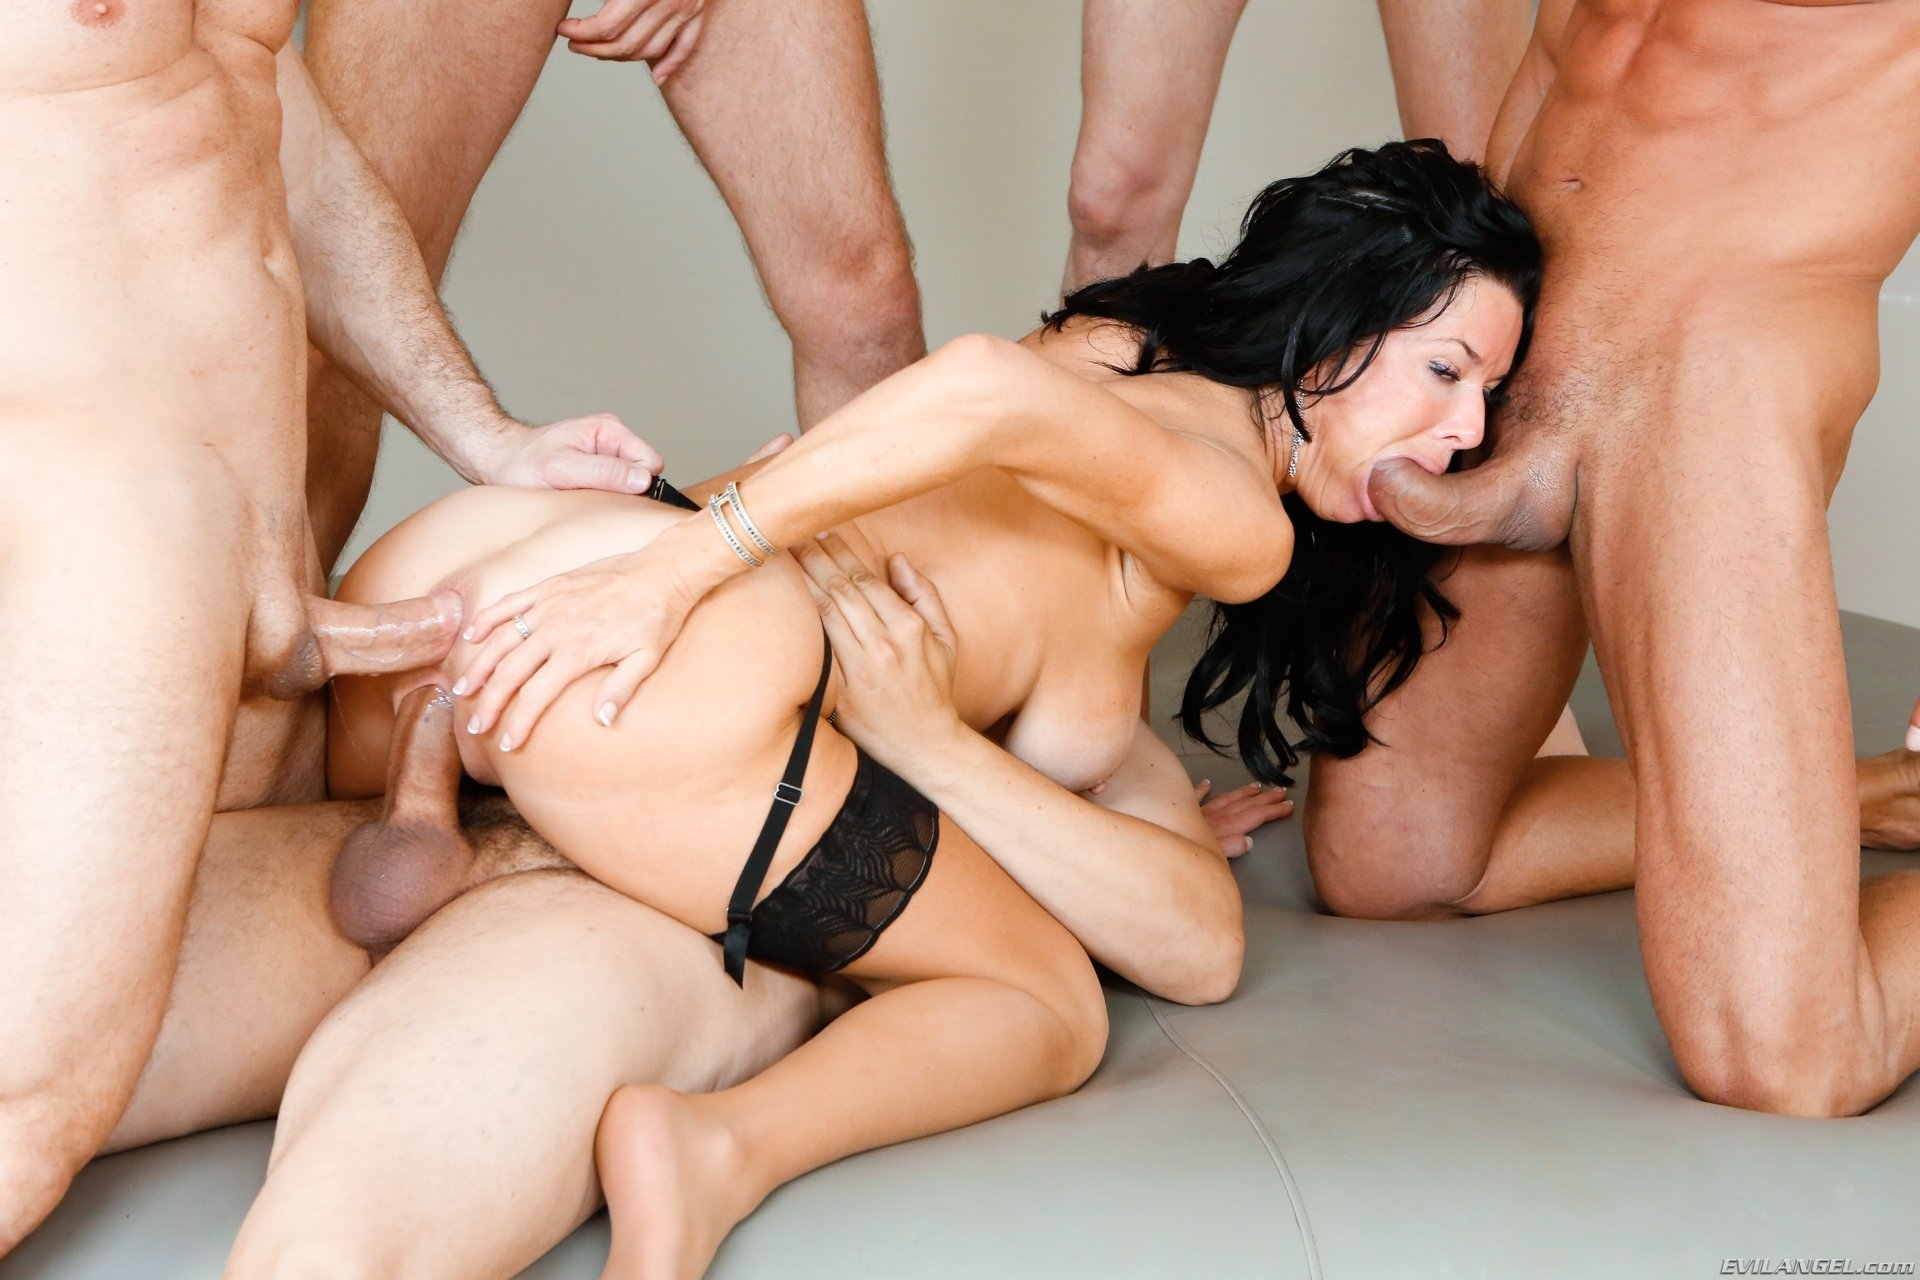 Free uncensored gang bang sex video